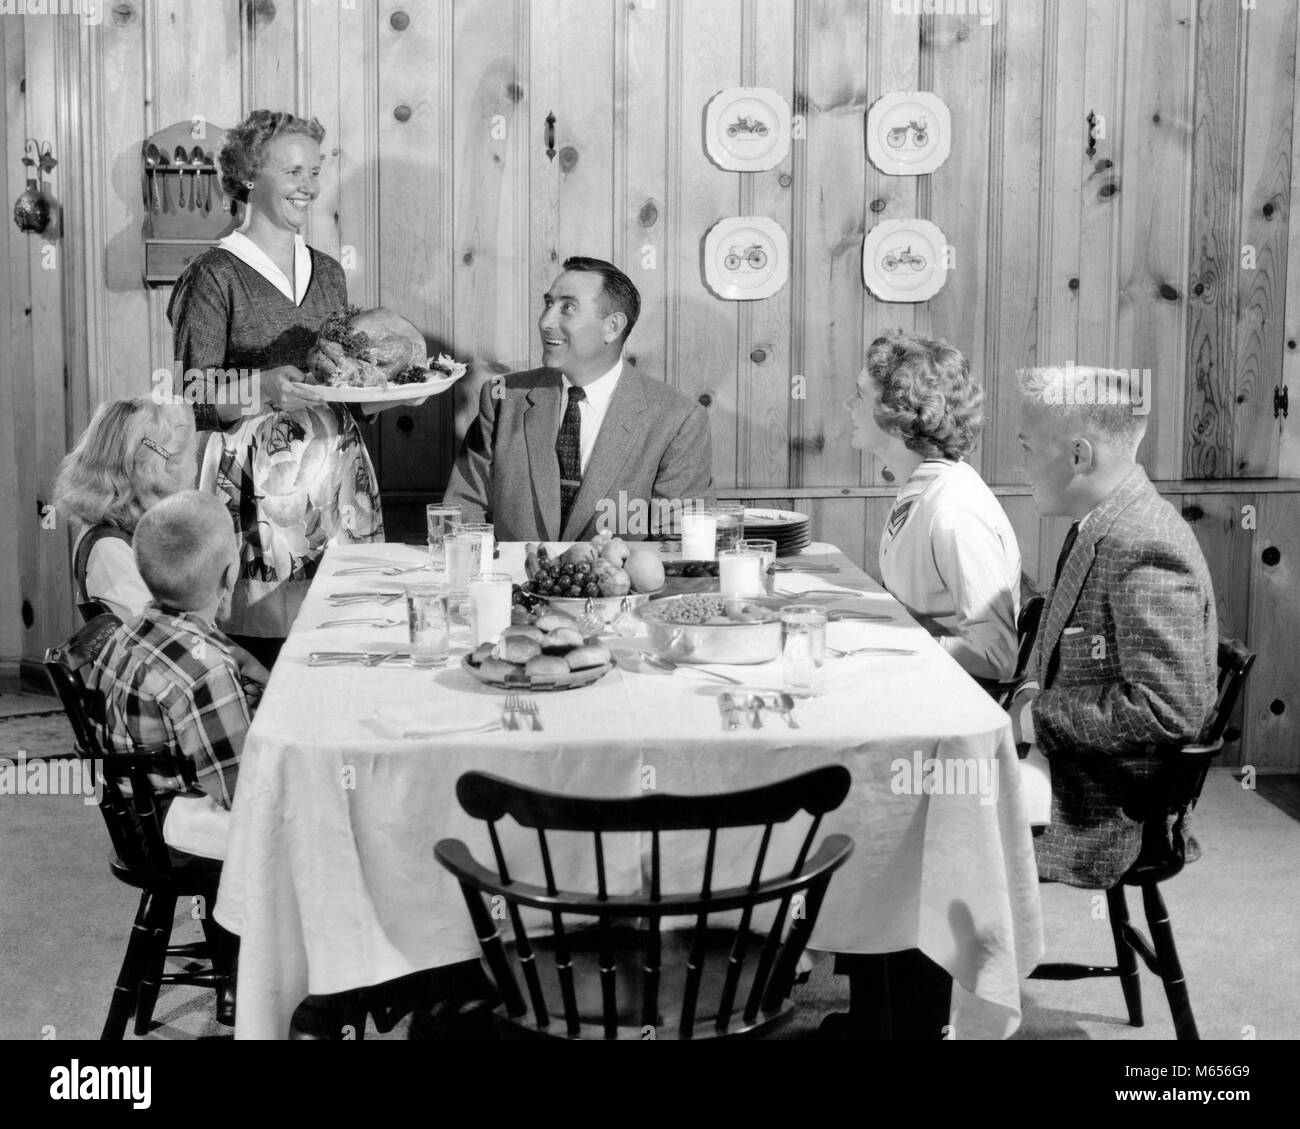 1950s MOTHER SERVING TURKEY ON PLATTER TO SMILING FAMILY AT TABLE IN KNOTTY PINE PANELED DINING ROOM - d4349 HAR001 - Stock Image